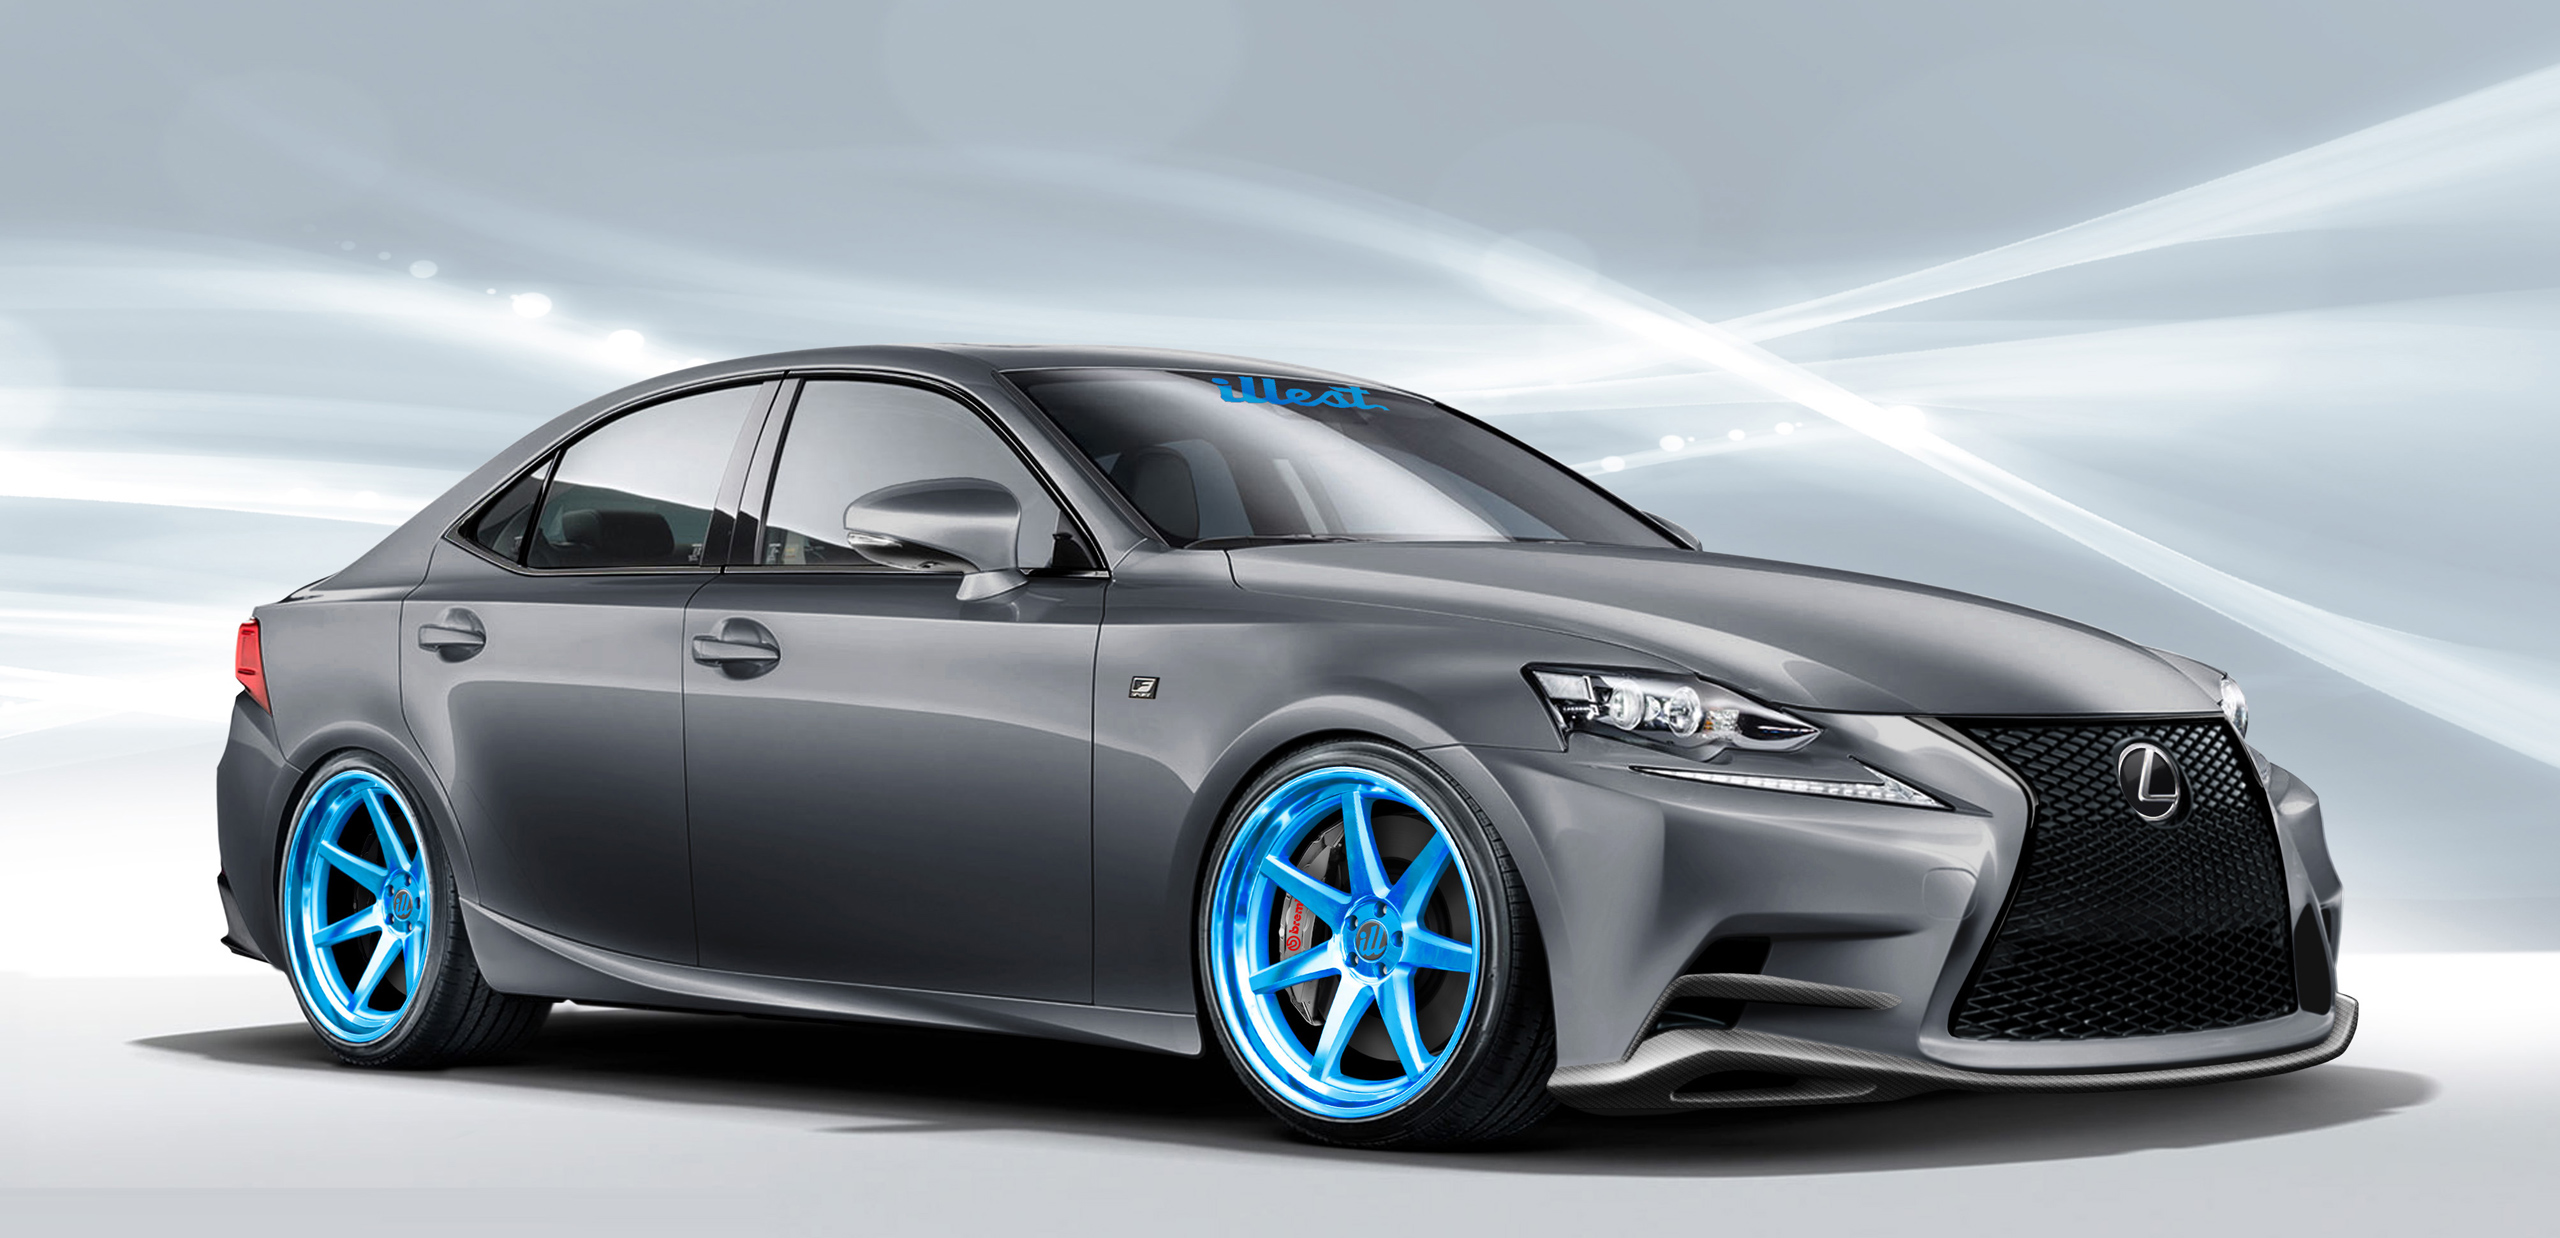 Lexus IS Body Kit From Illest Coachworks